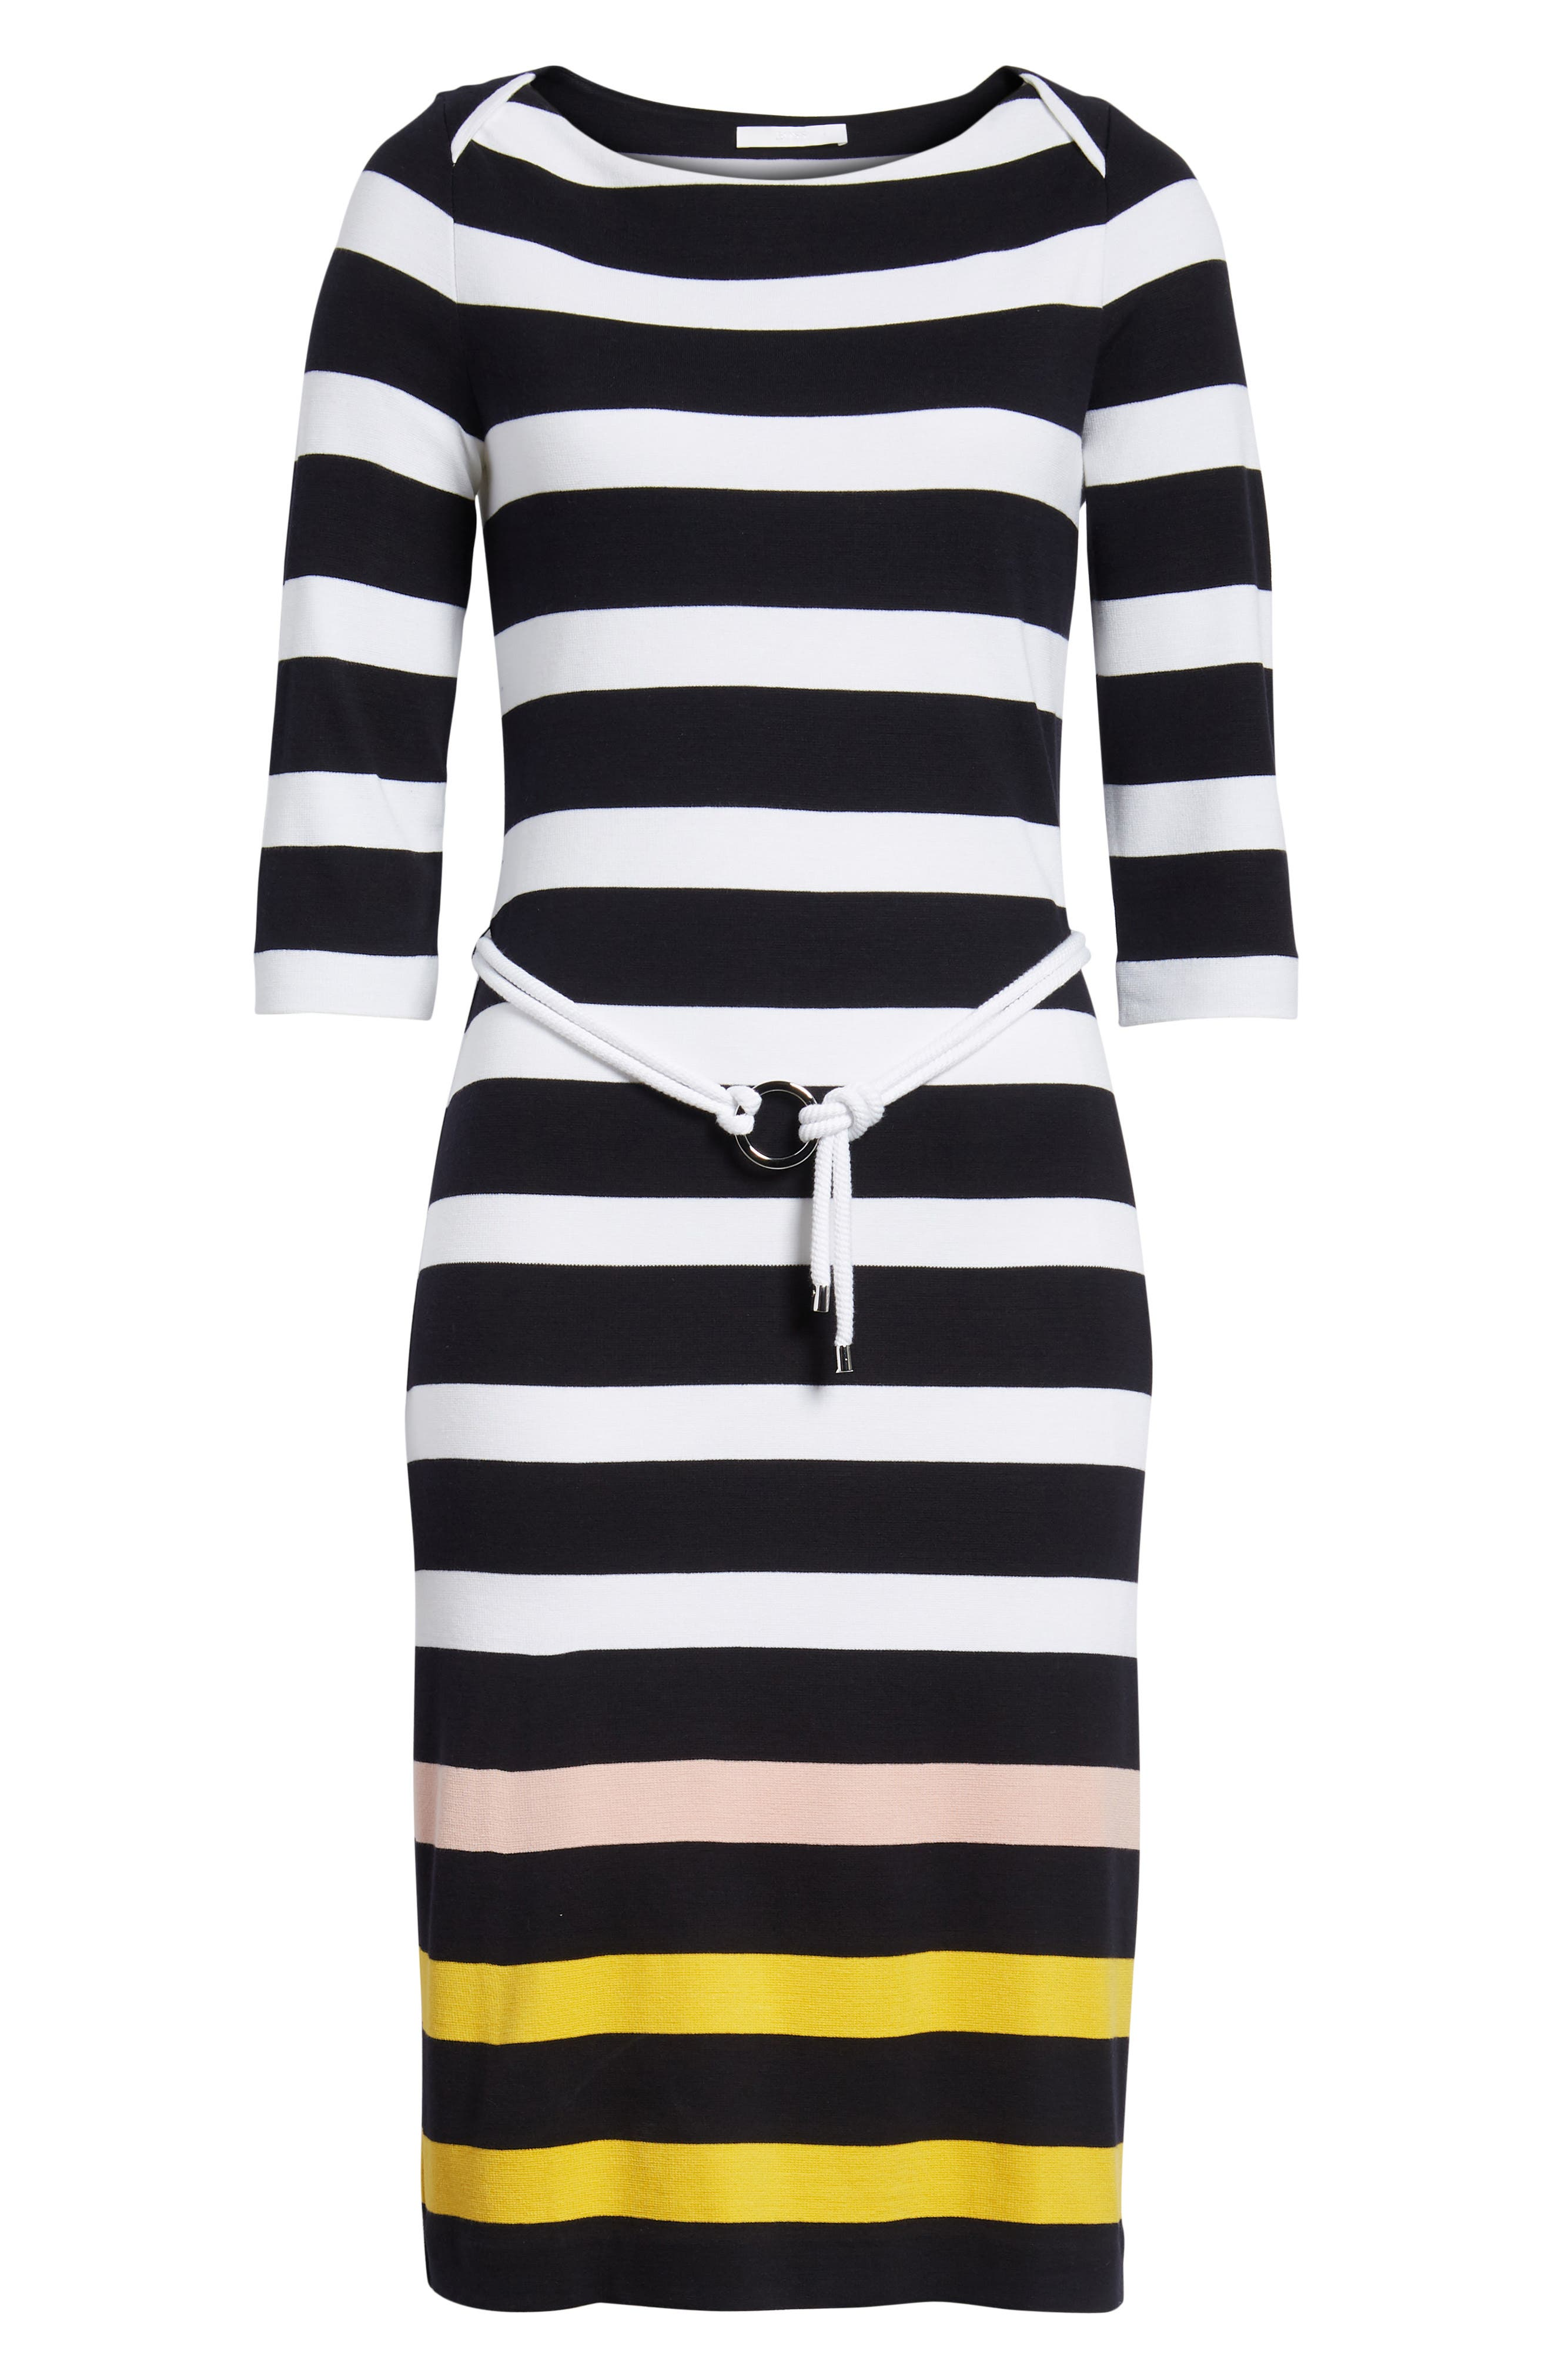 Elsara Stripe Sheath Dress,                             Alternate thumbnail 7, color,                             461